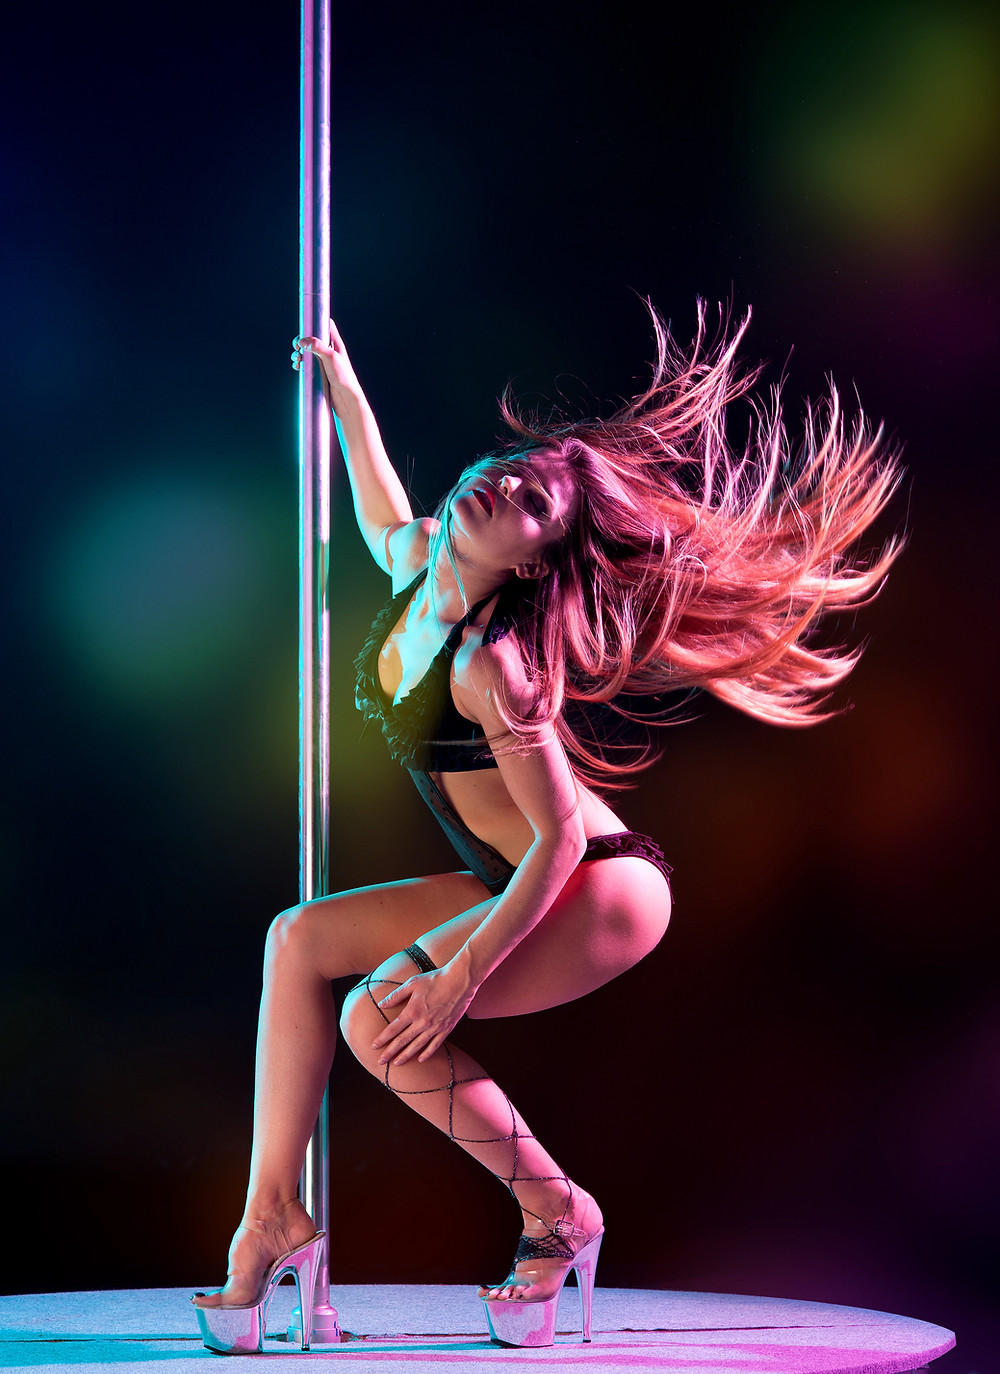 Pole Dancing Party Ideas for Holiday Parties Dallas Fort Worth